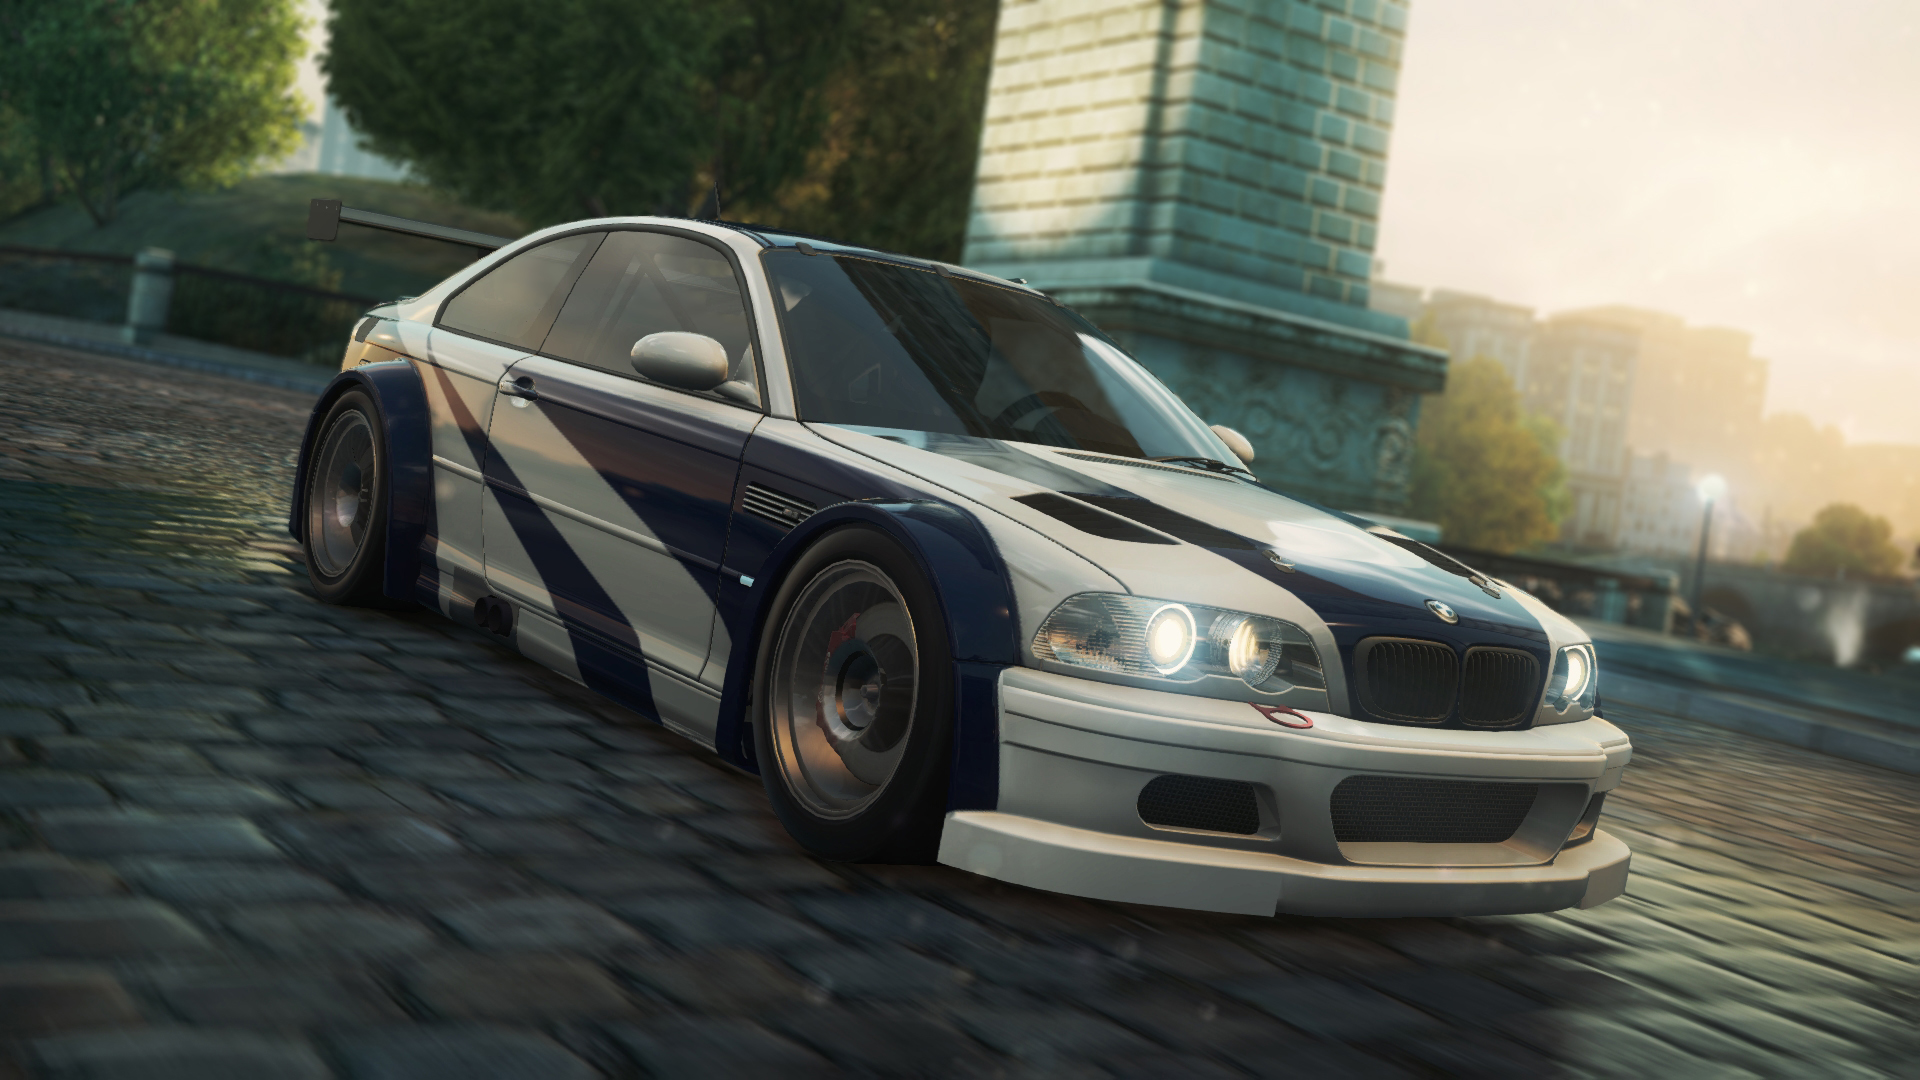 bmw m3 gtr race need for speed wiki fandom powered by wikia